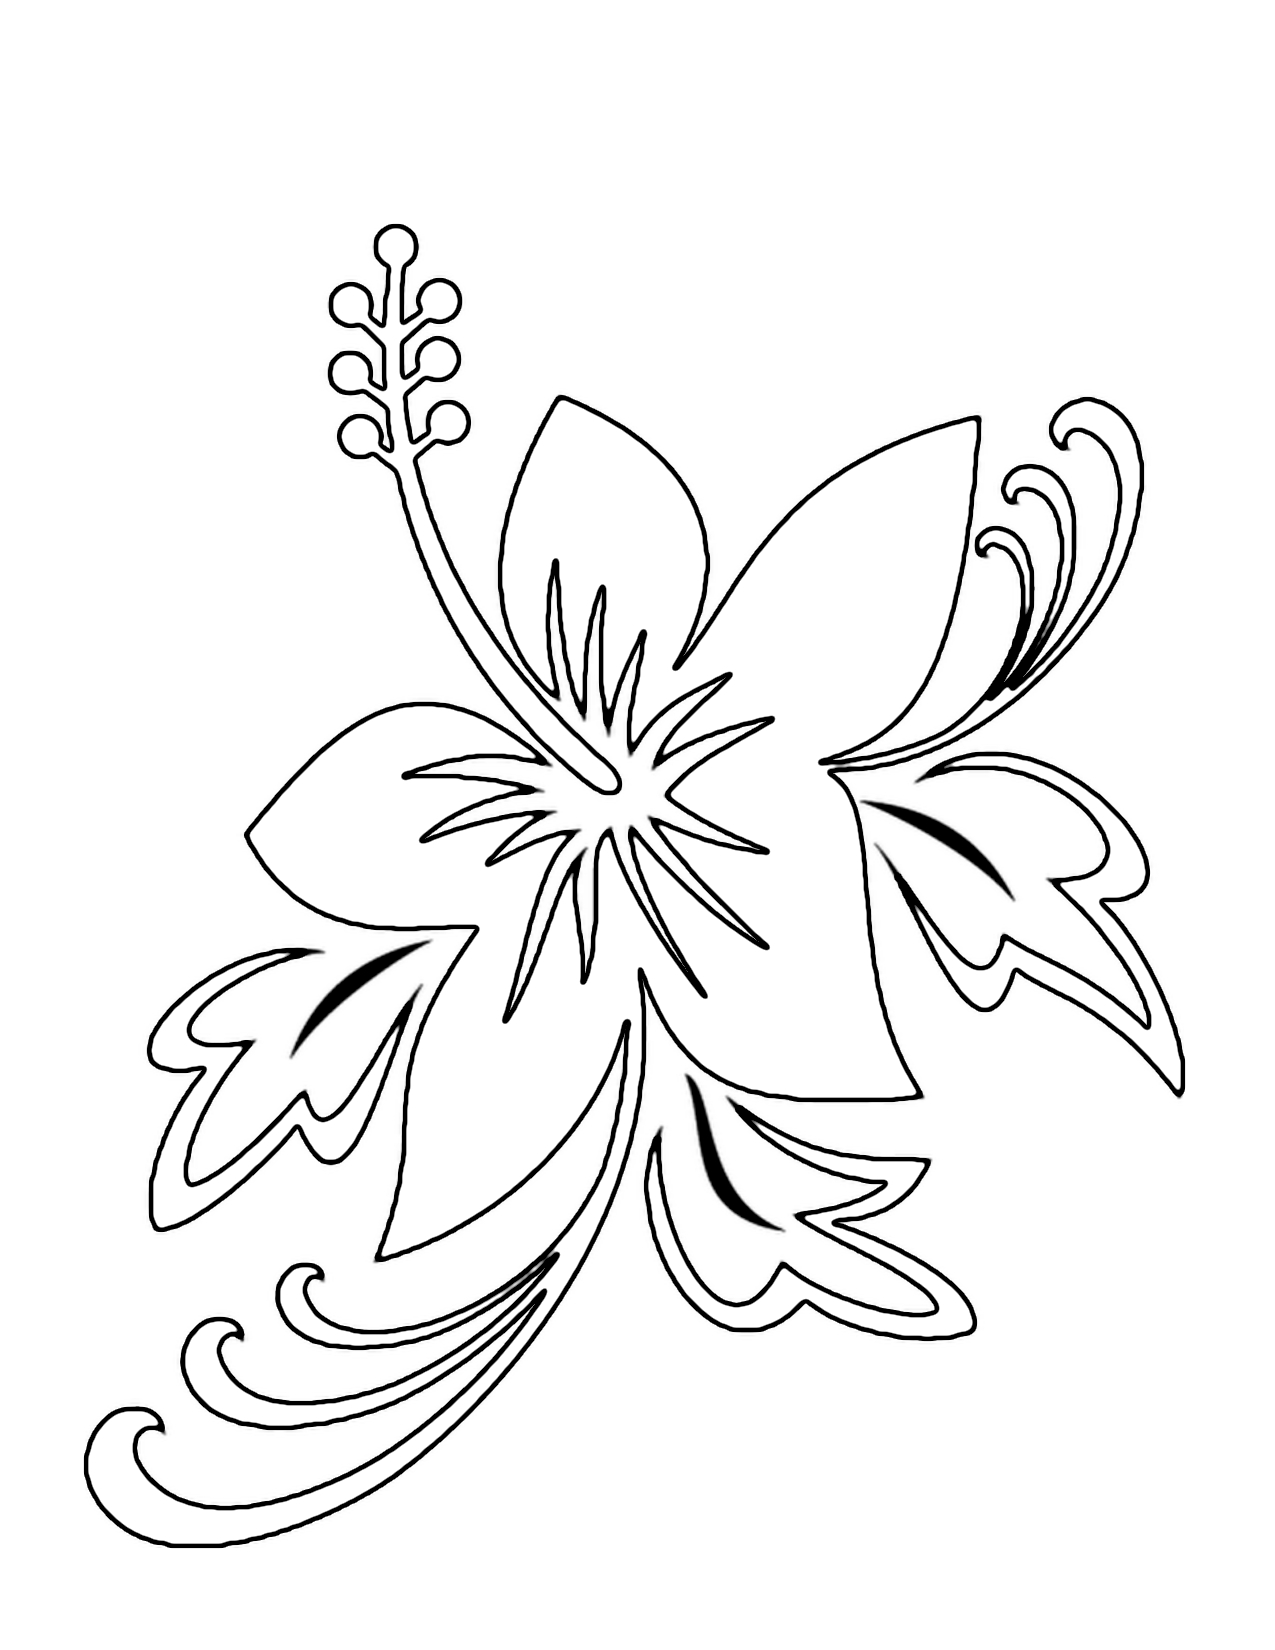 Flowers Coloring Pages Color Printing Flower Printable Of Printable Puter Coloring Pages Collection